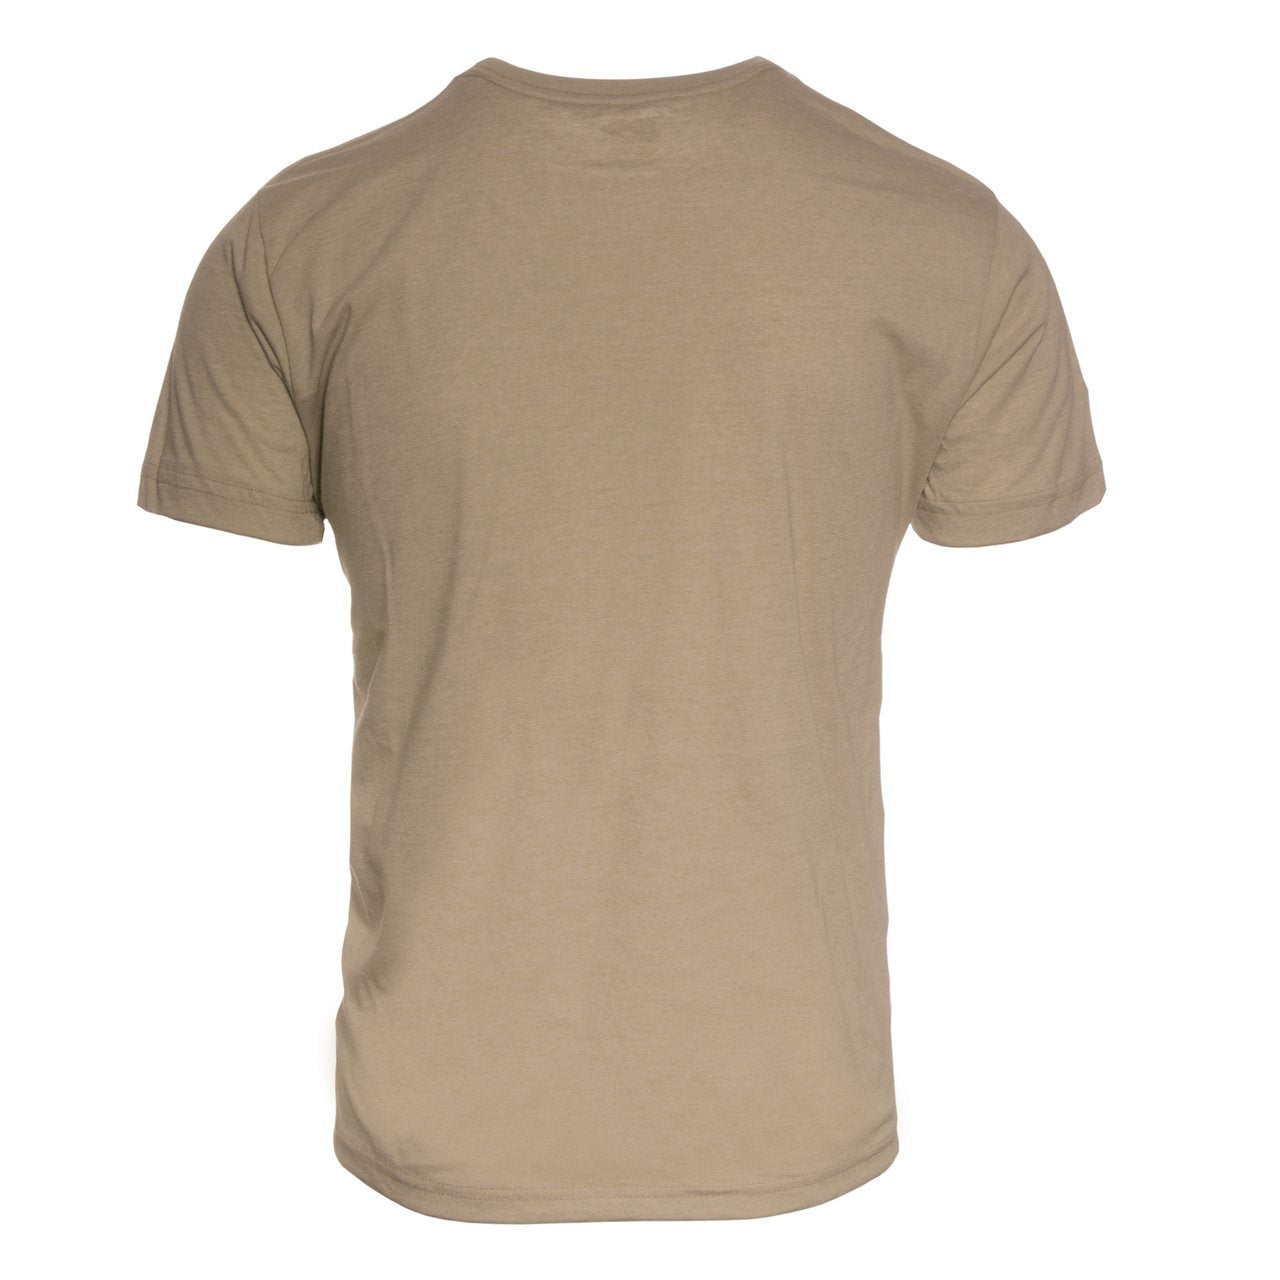 PC100TN Eco REPREVE® Recycled Polyester/Cotton Crew T-Shirt - Tan